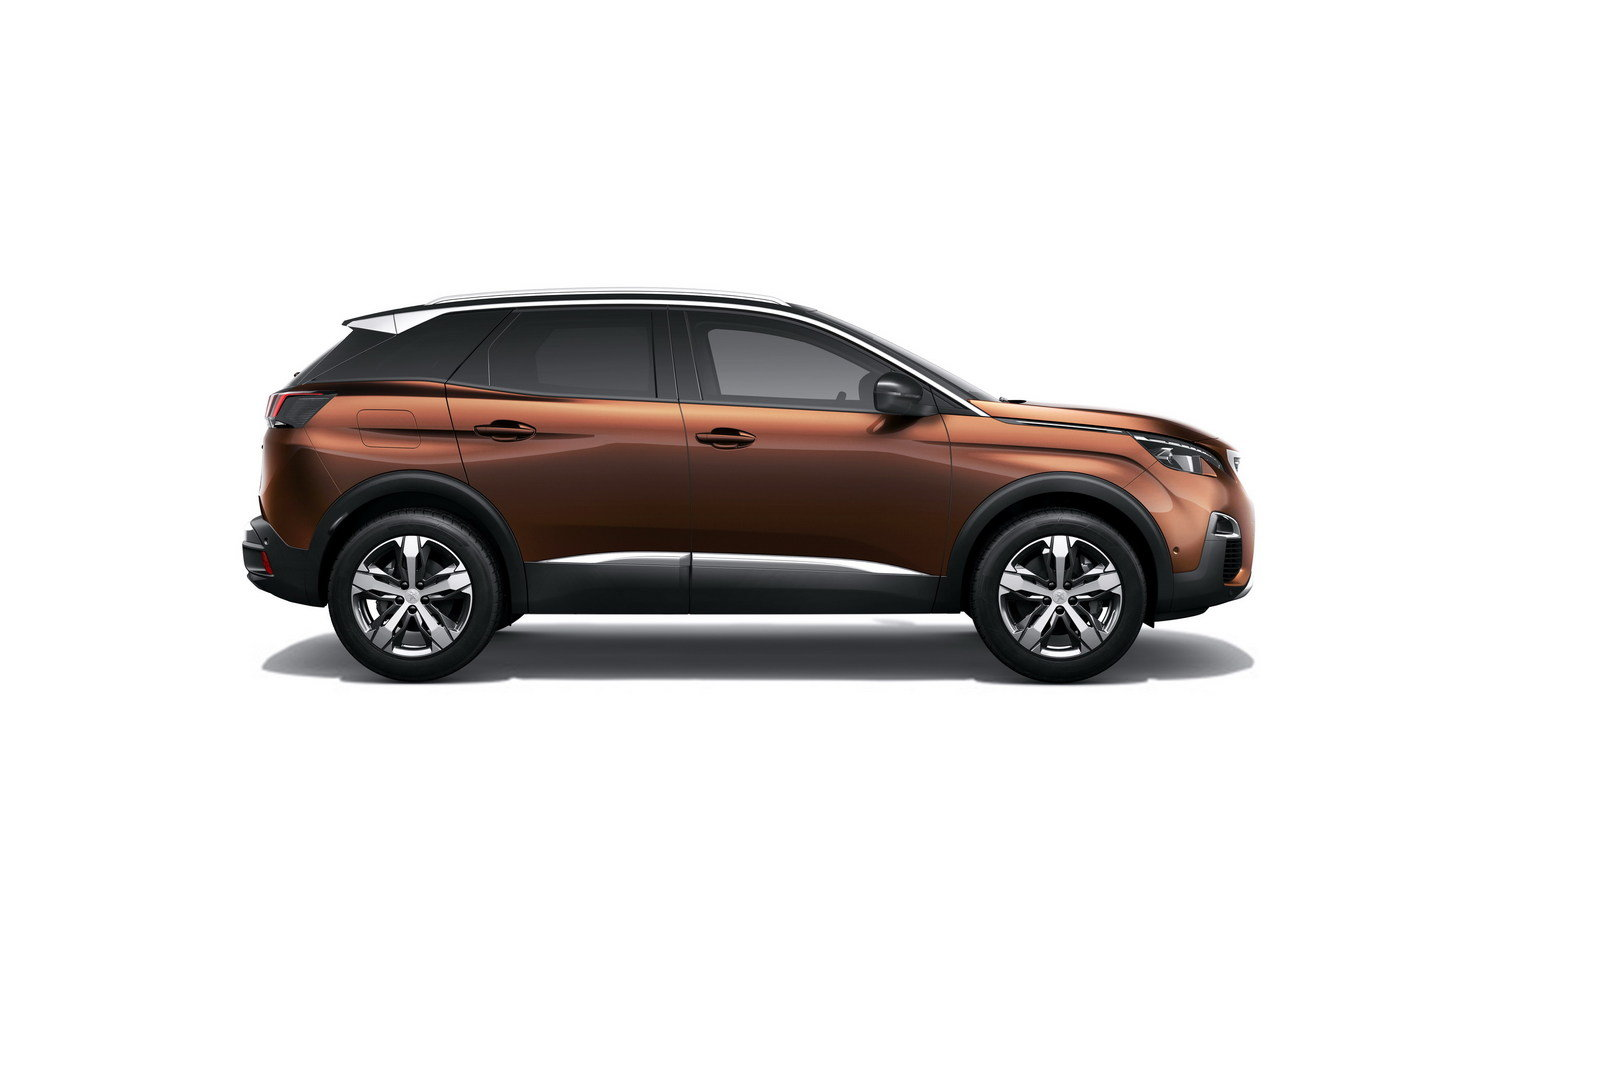 2017 peugeot 3008 picture 676830 car review top speed. Black Bedroom Furniture Sets. Home Design Ideas